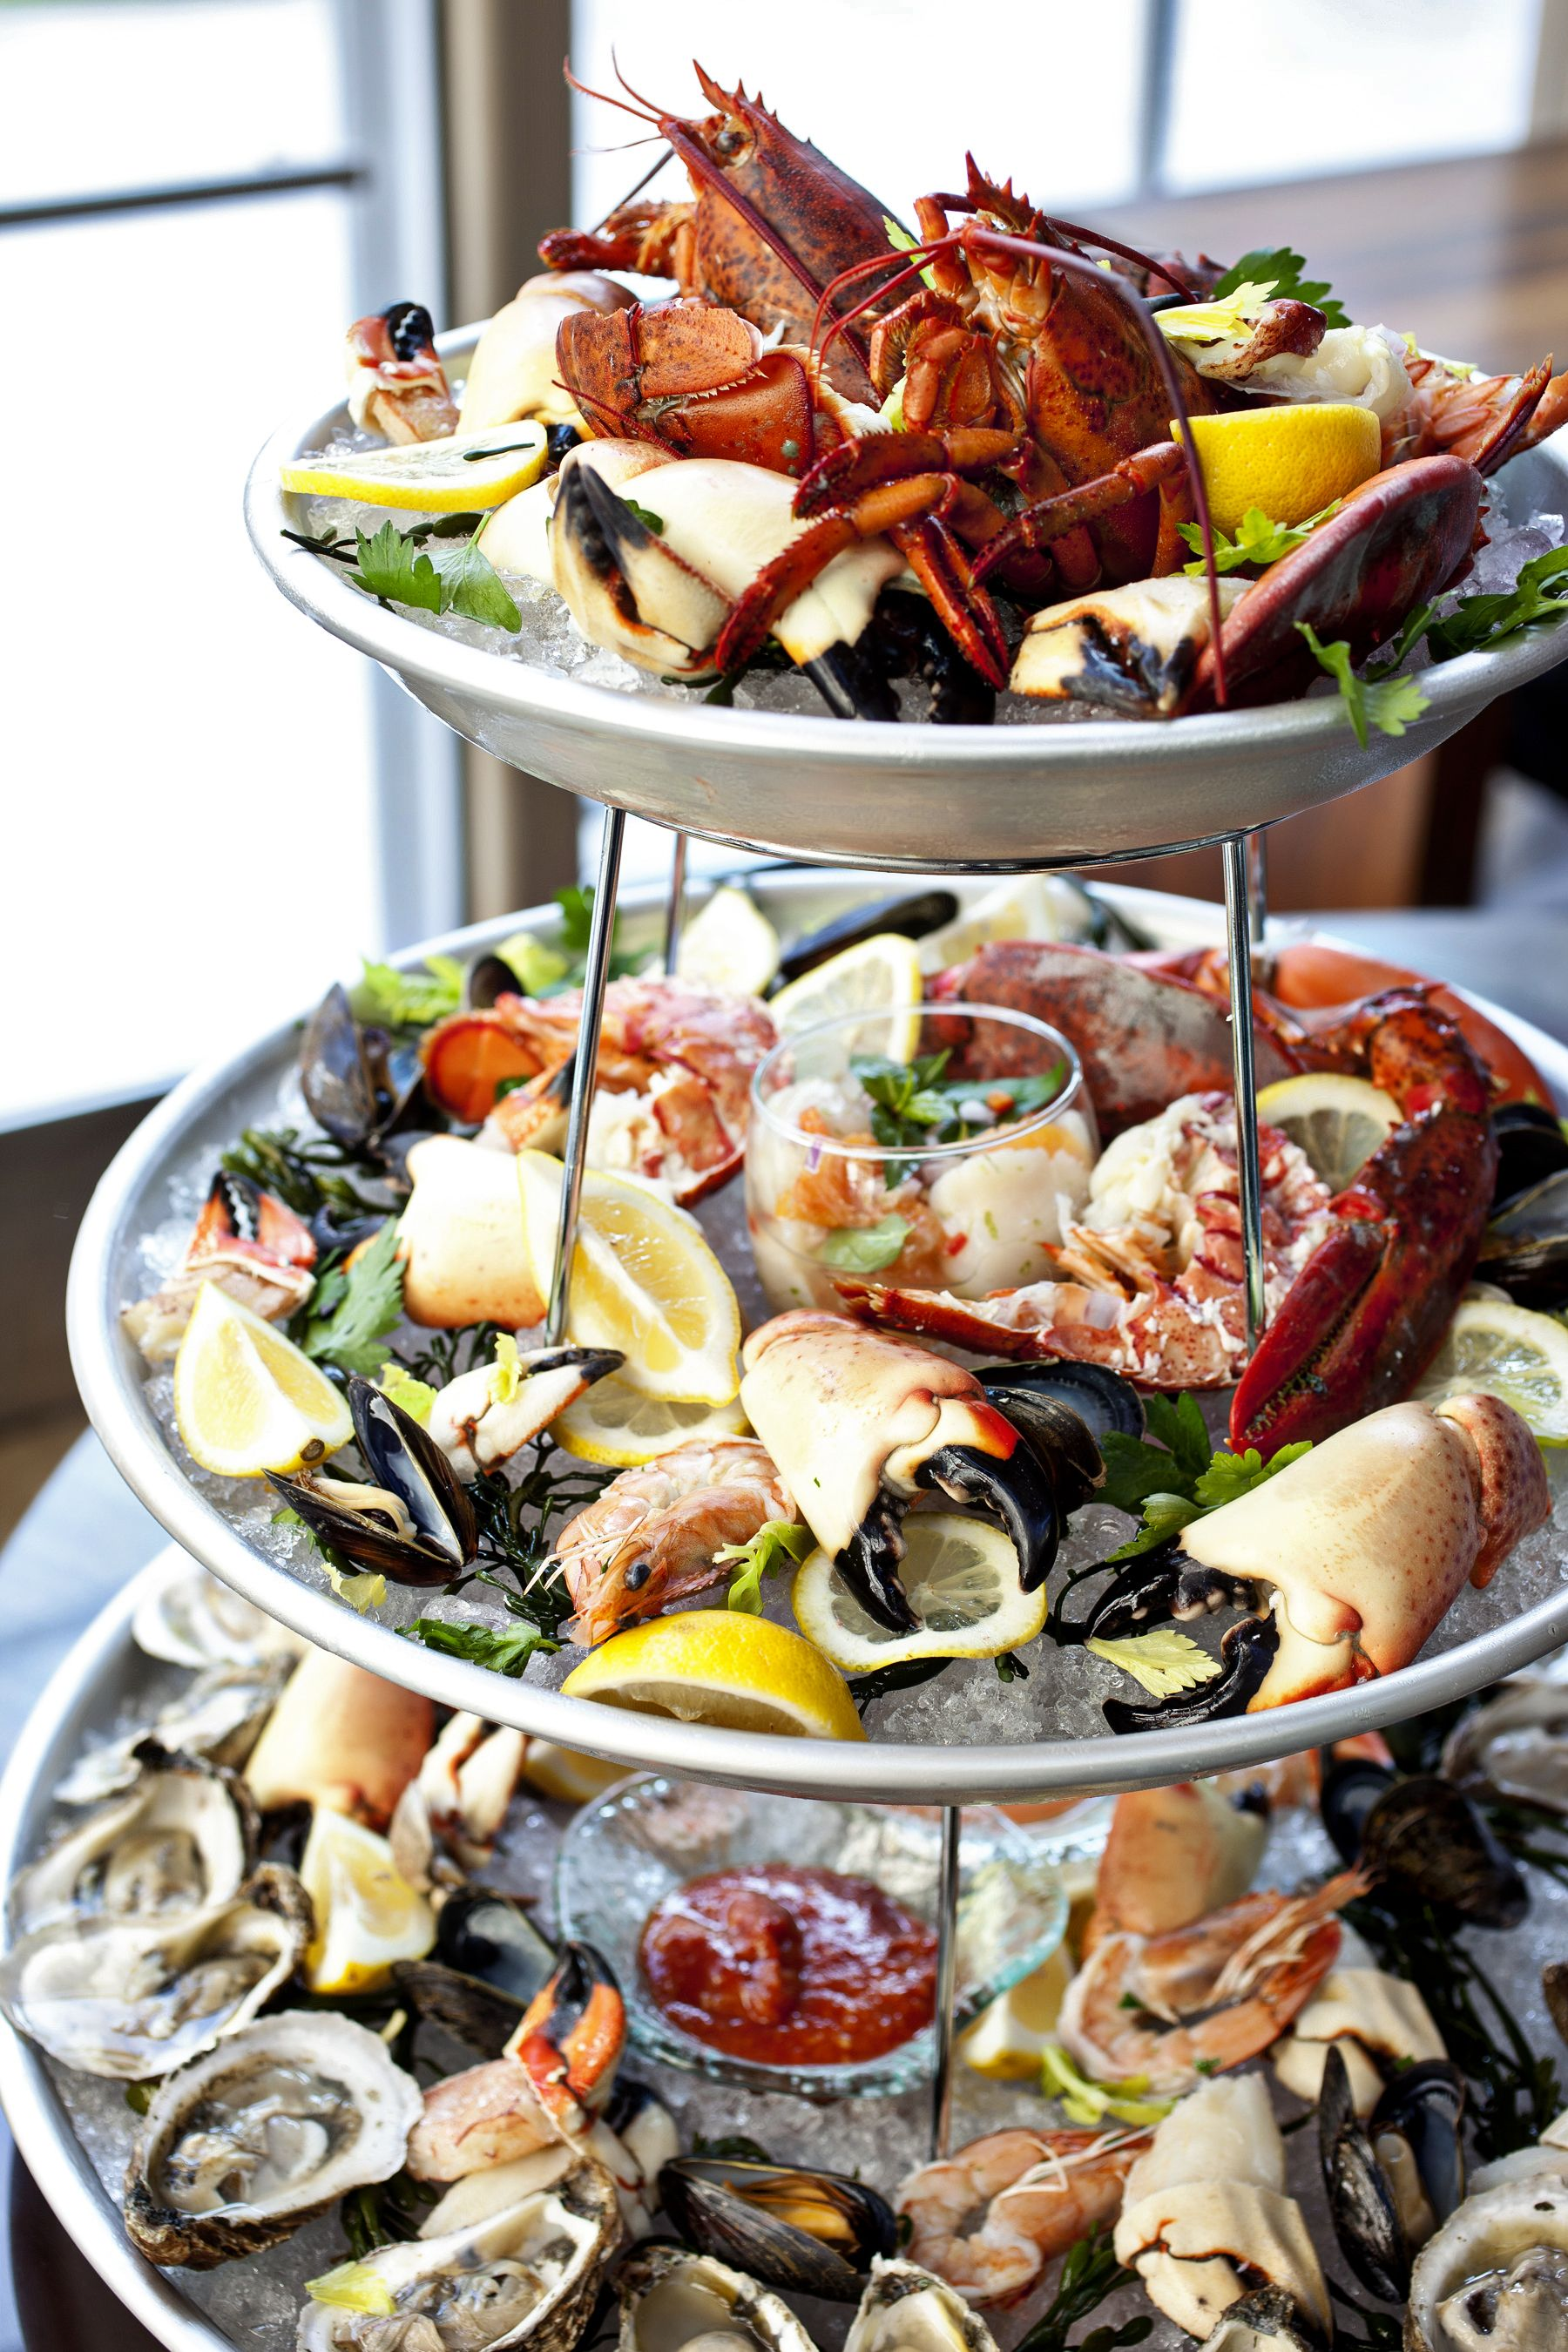 Tagliere Tiers The Plateau De Fruits De Mer At Poste Moderne Brasserie A